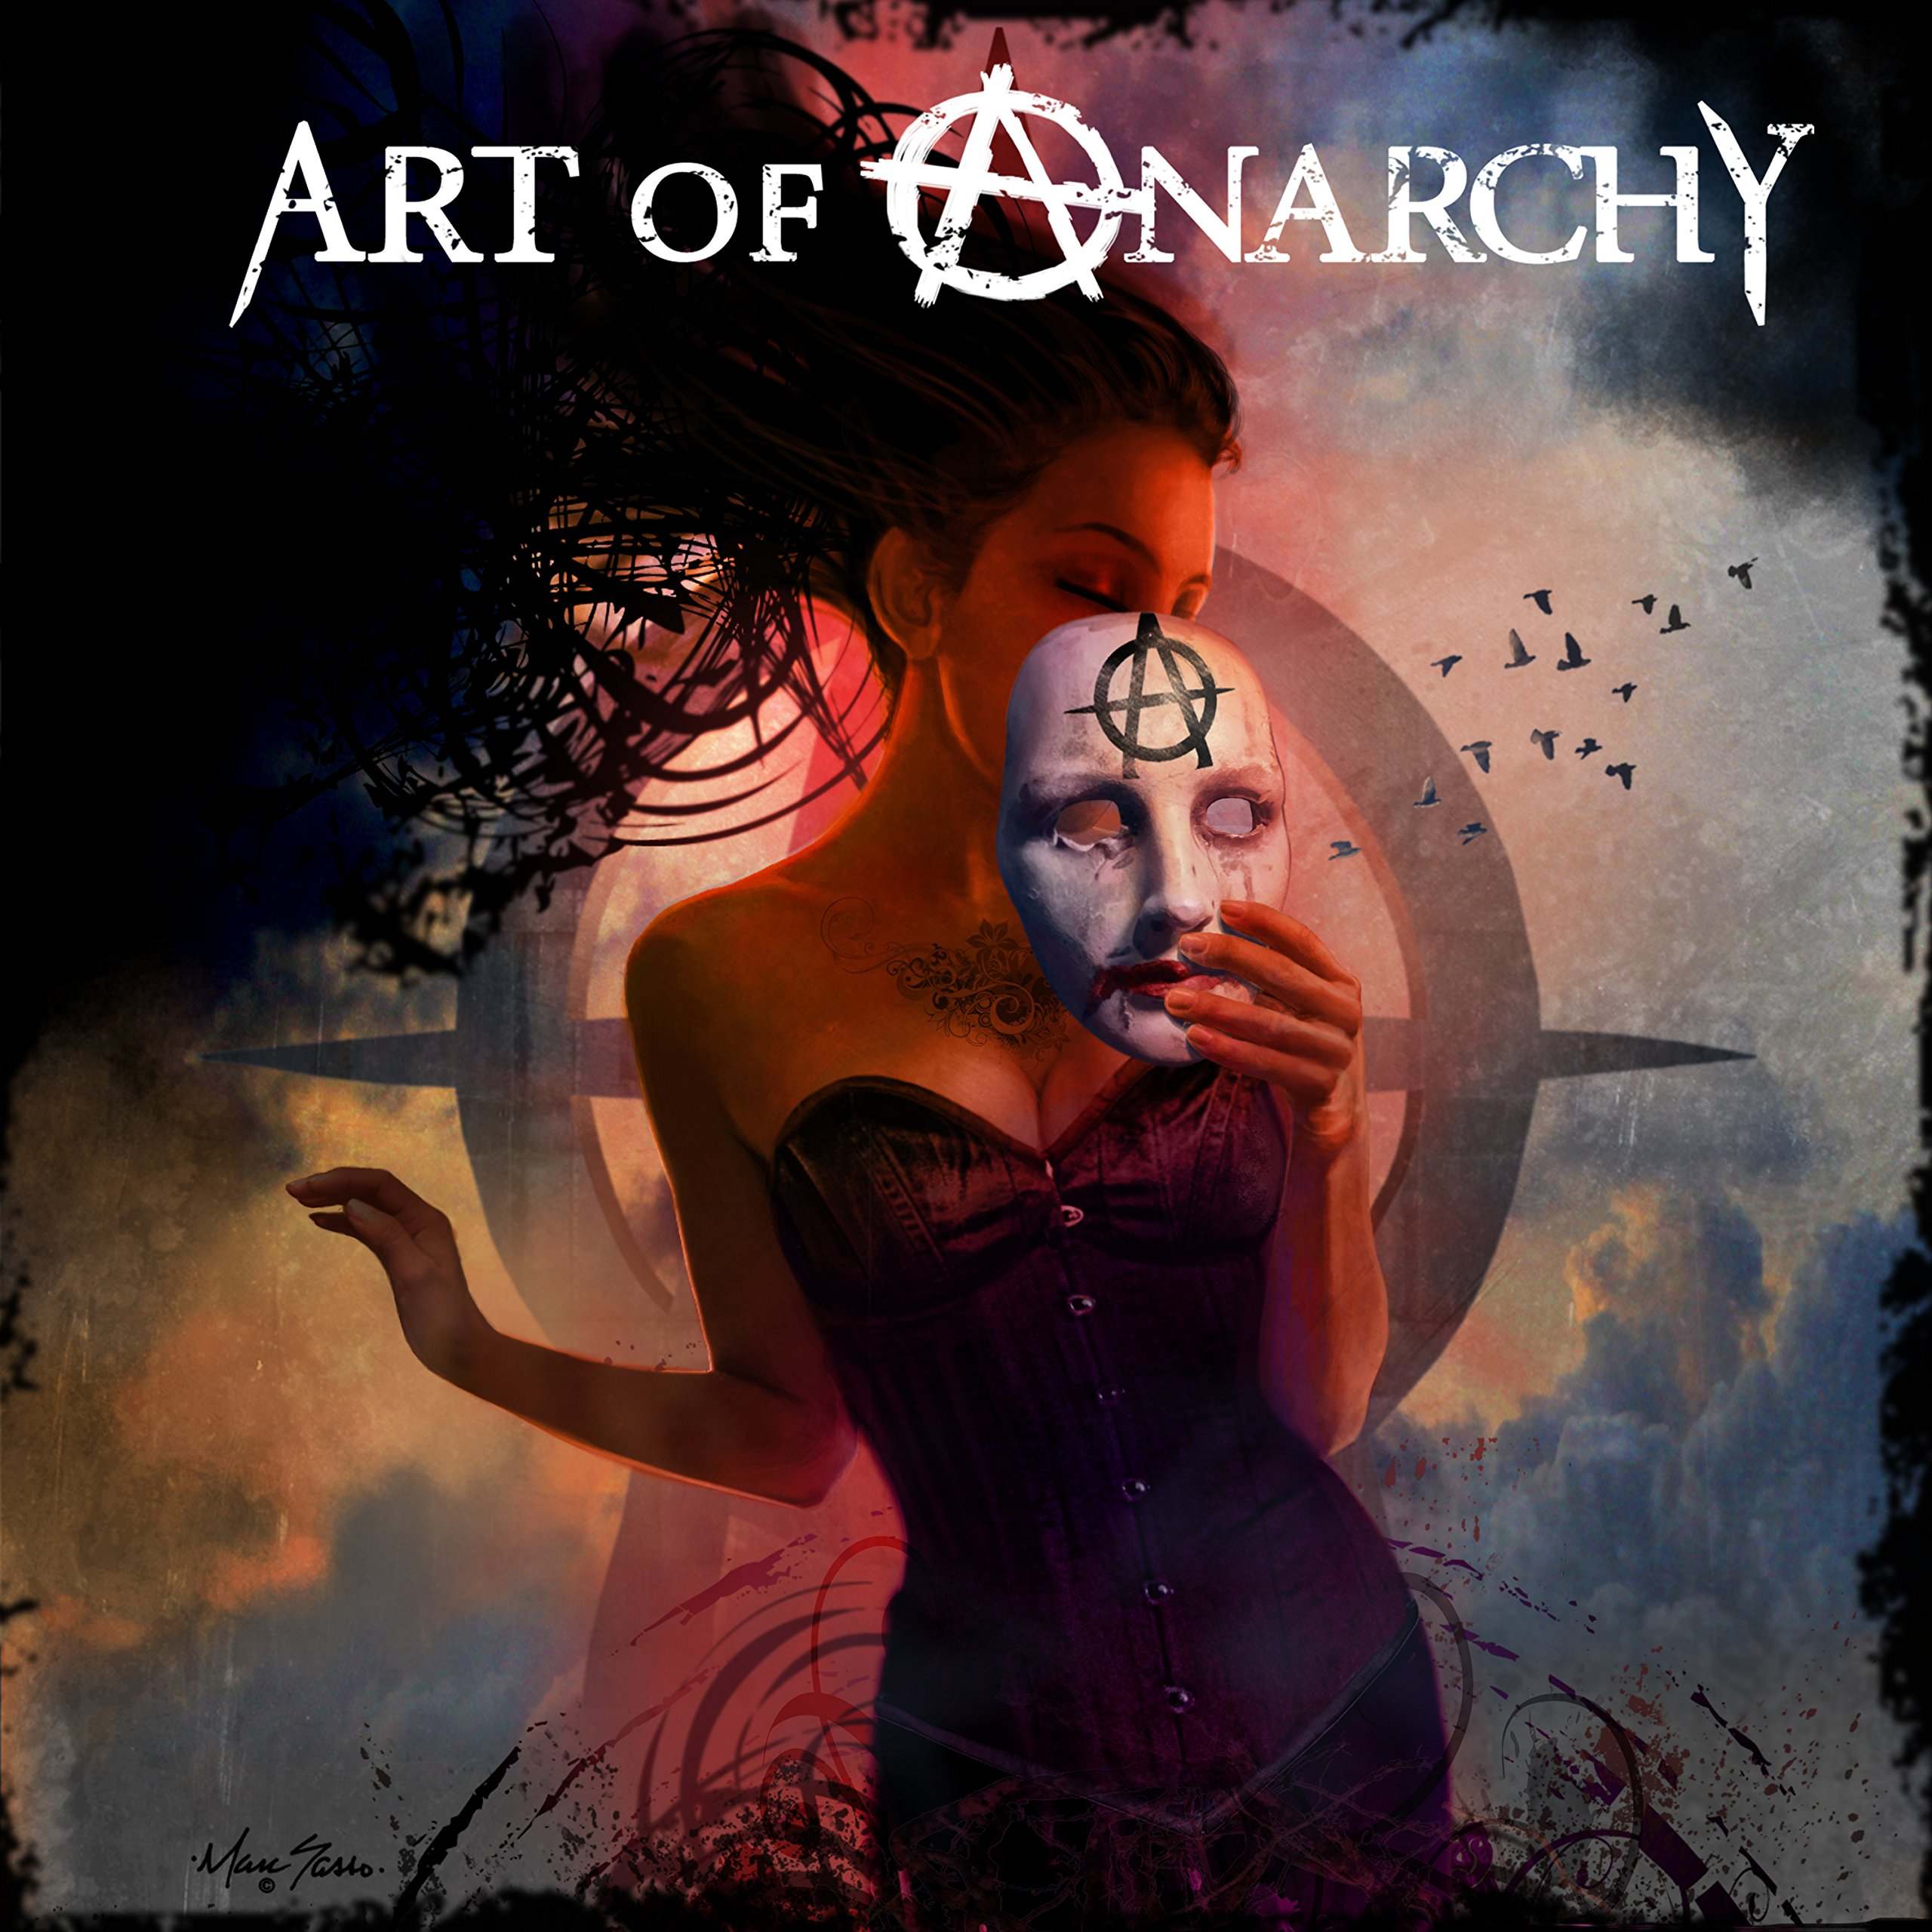 CD : Art of Anarchy - Art of Anarchy (CD)